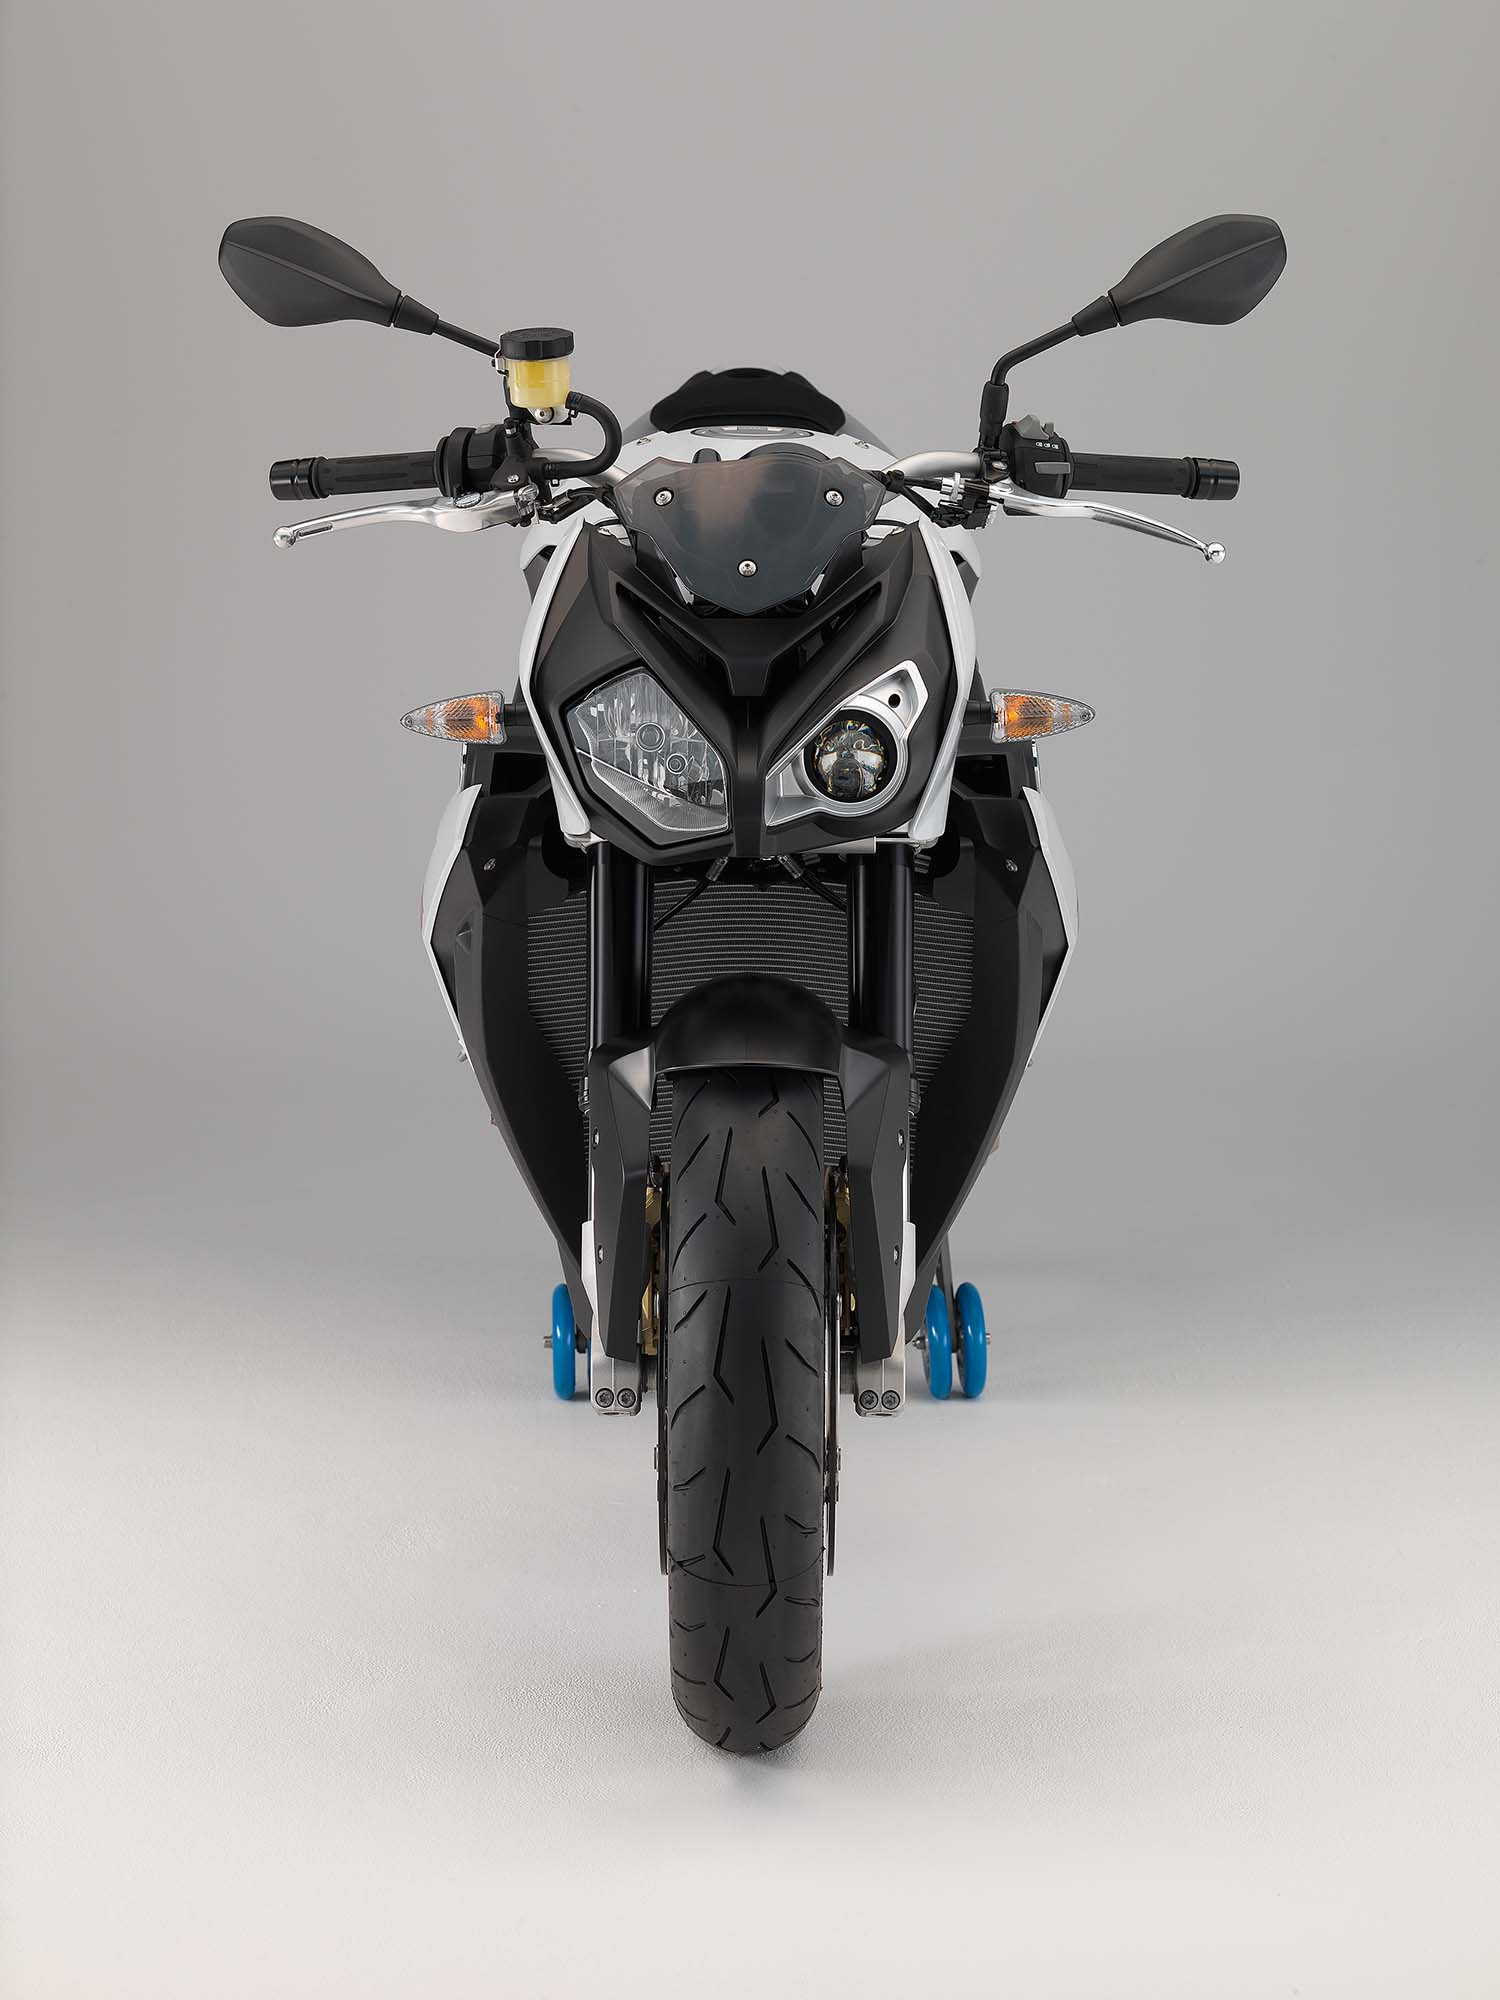 Fast Sports Cars Wallpapers Front View Of Bmw S1000r